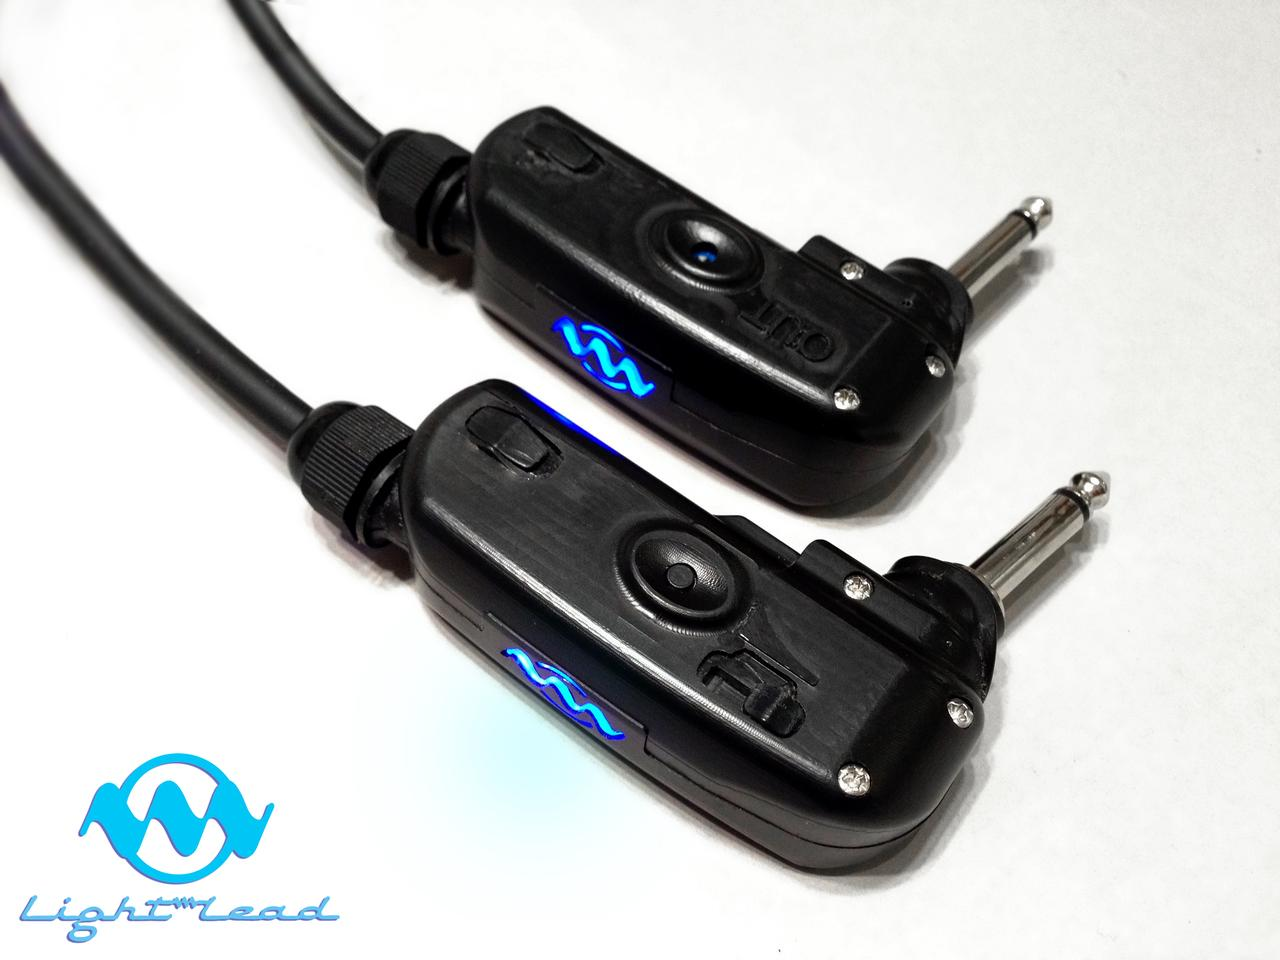 According to Iconic Sound, the signal transmission through the cable is completely flawless